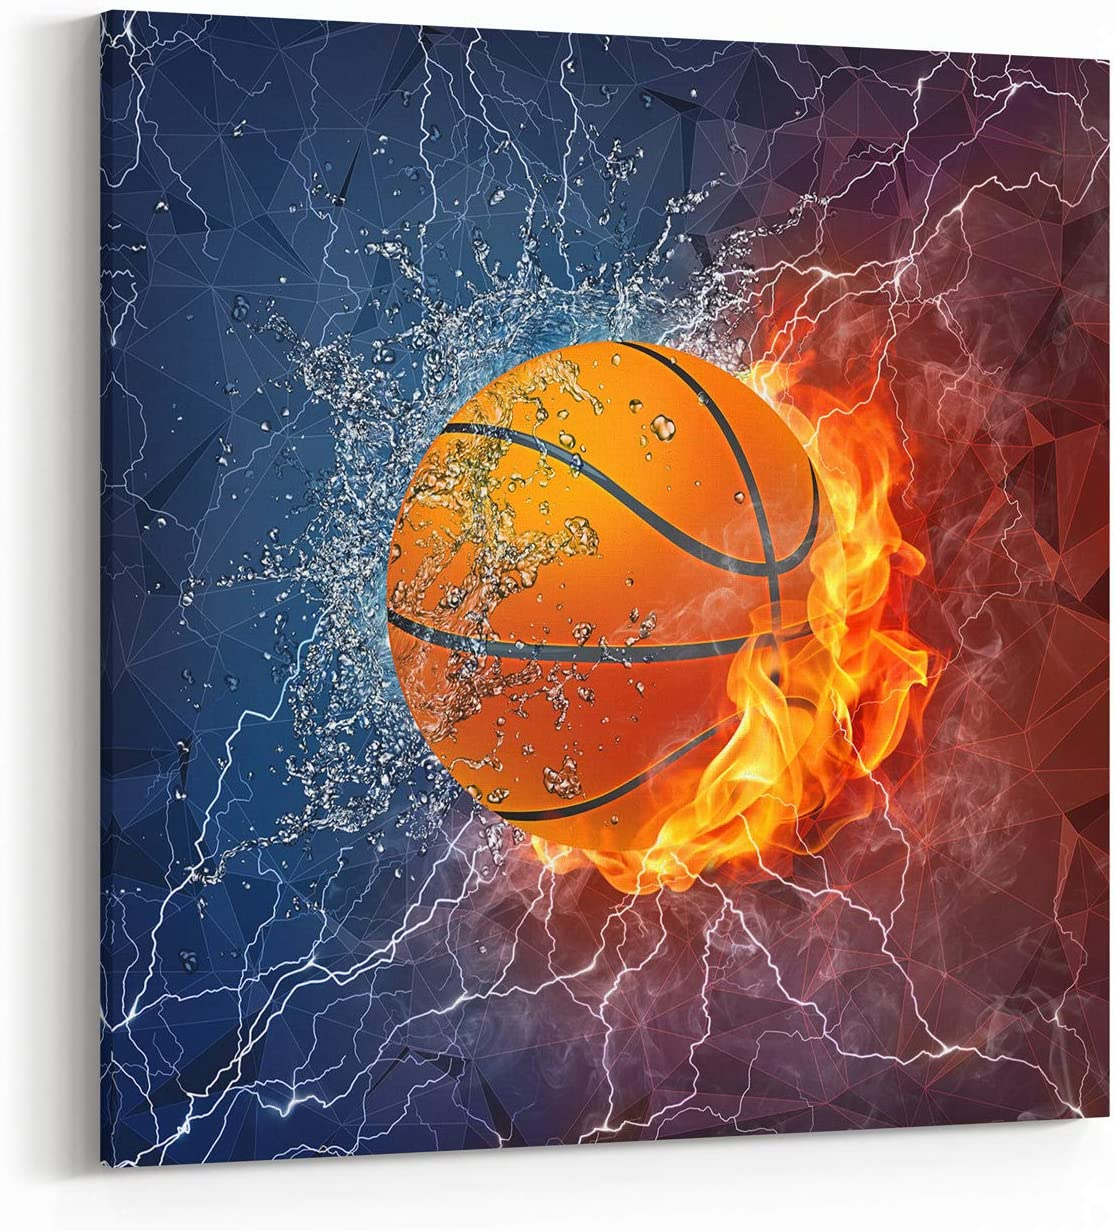 Basketball Canvas Wall Art, Cool Sport Ball on Fire and Water Abstract Giclee Print Home Decor Ready to Hang, 12x12 Inch